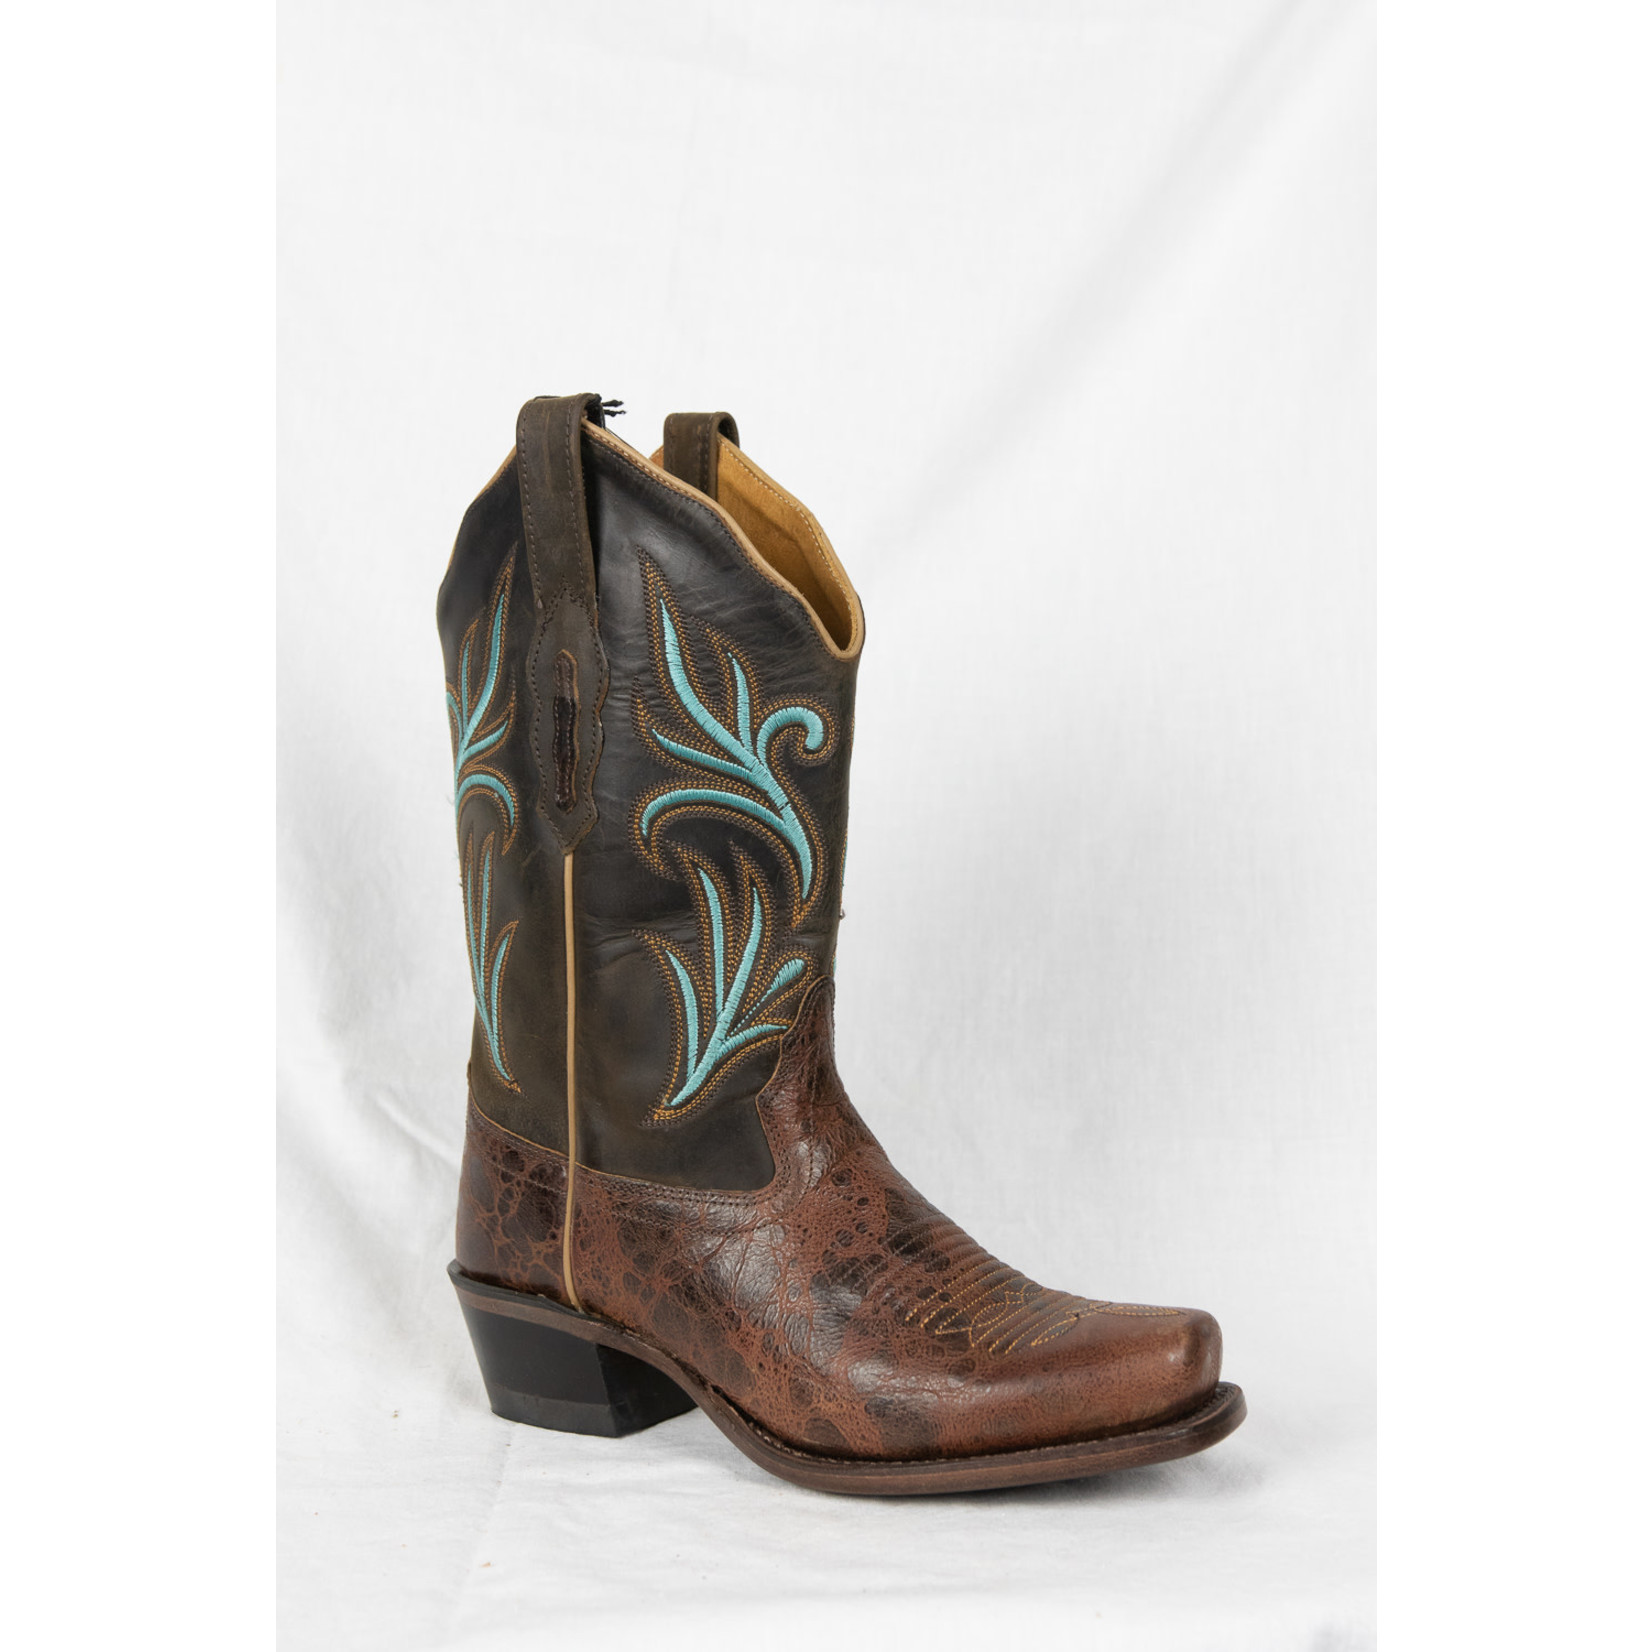 Old west Old West Women's Cowboy Boot 18010